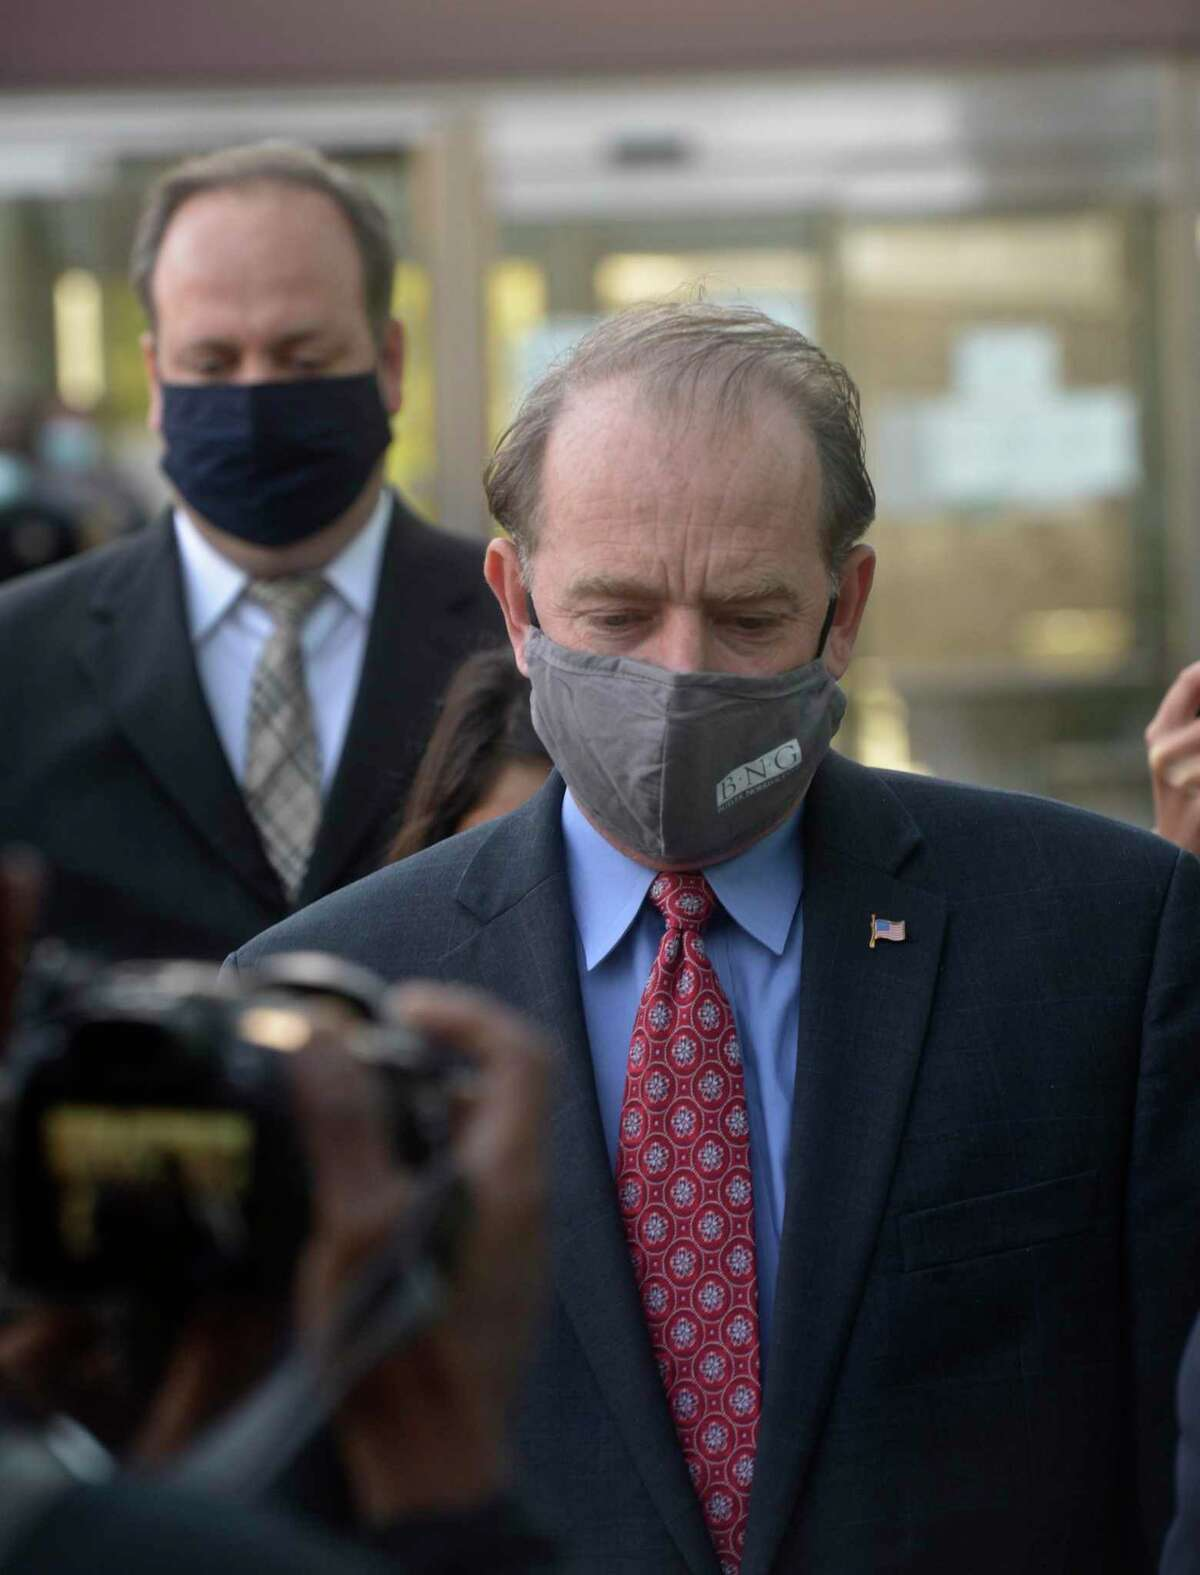 Kent Mawhinney, the attorney charged in the Jennifer Dulos case, was released on bond. He was brought to the Stamford Courthouse where he posted bond and was fitted with a GPS monitor. Monday, October 19, 2020, Stamford, Conn.